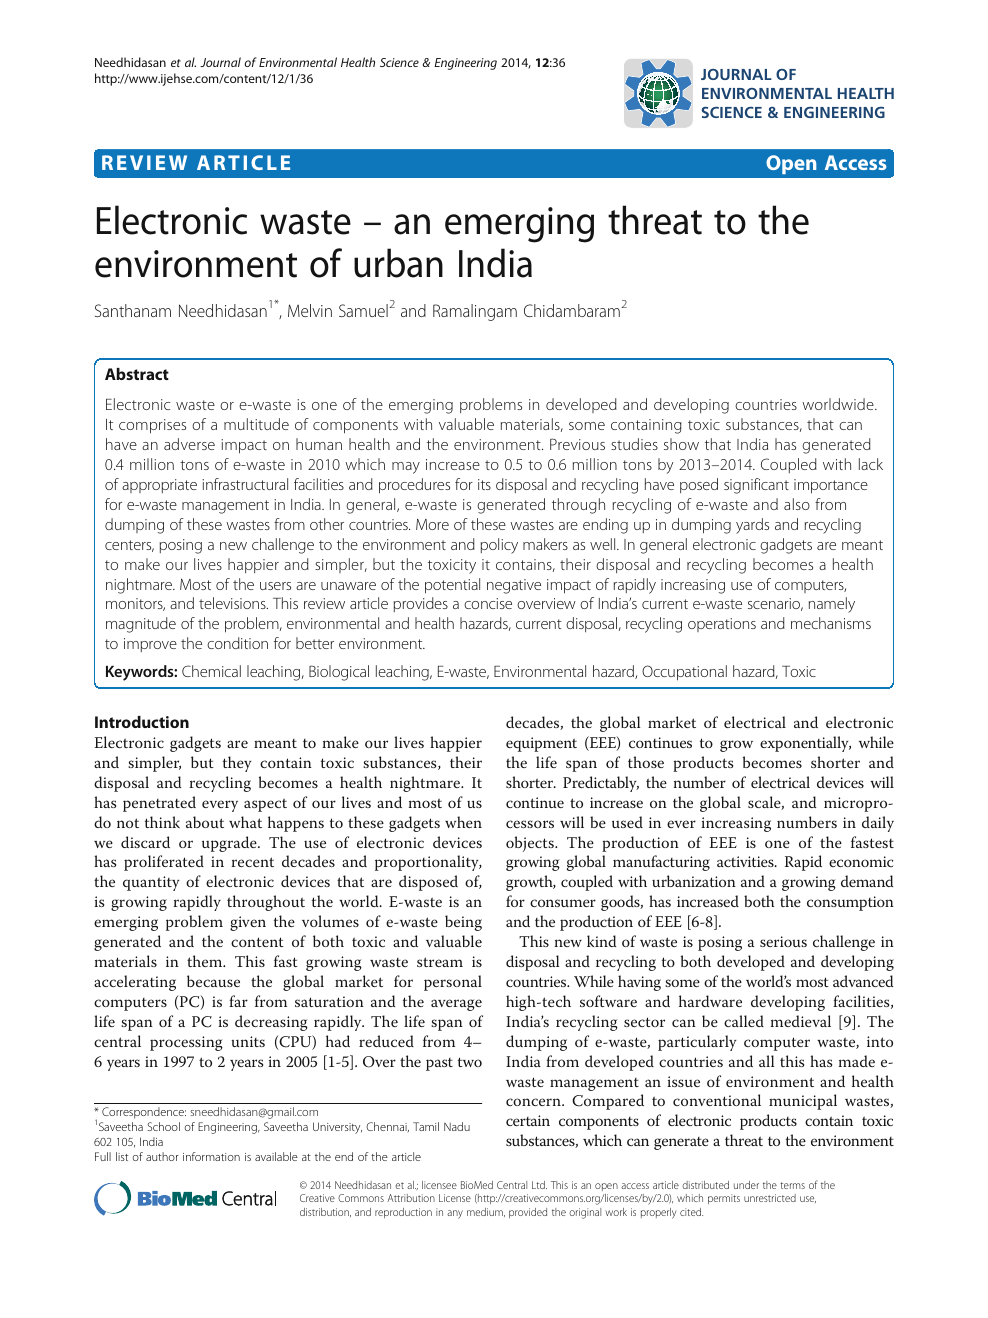 Electronic waste – an emerging threat to the environment of